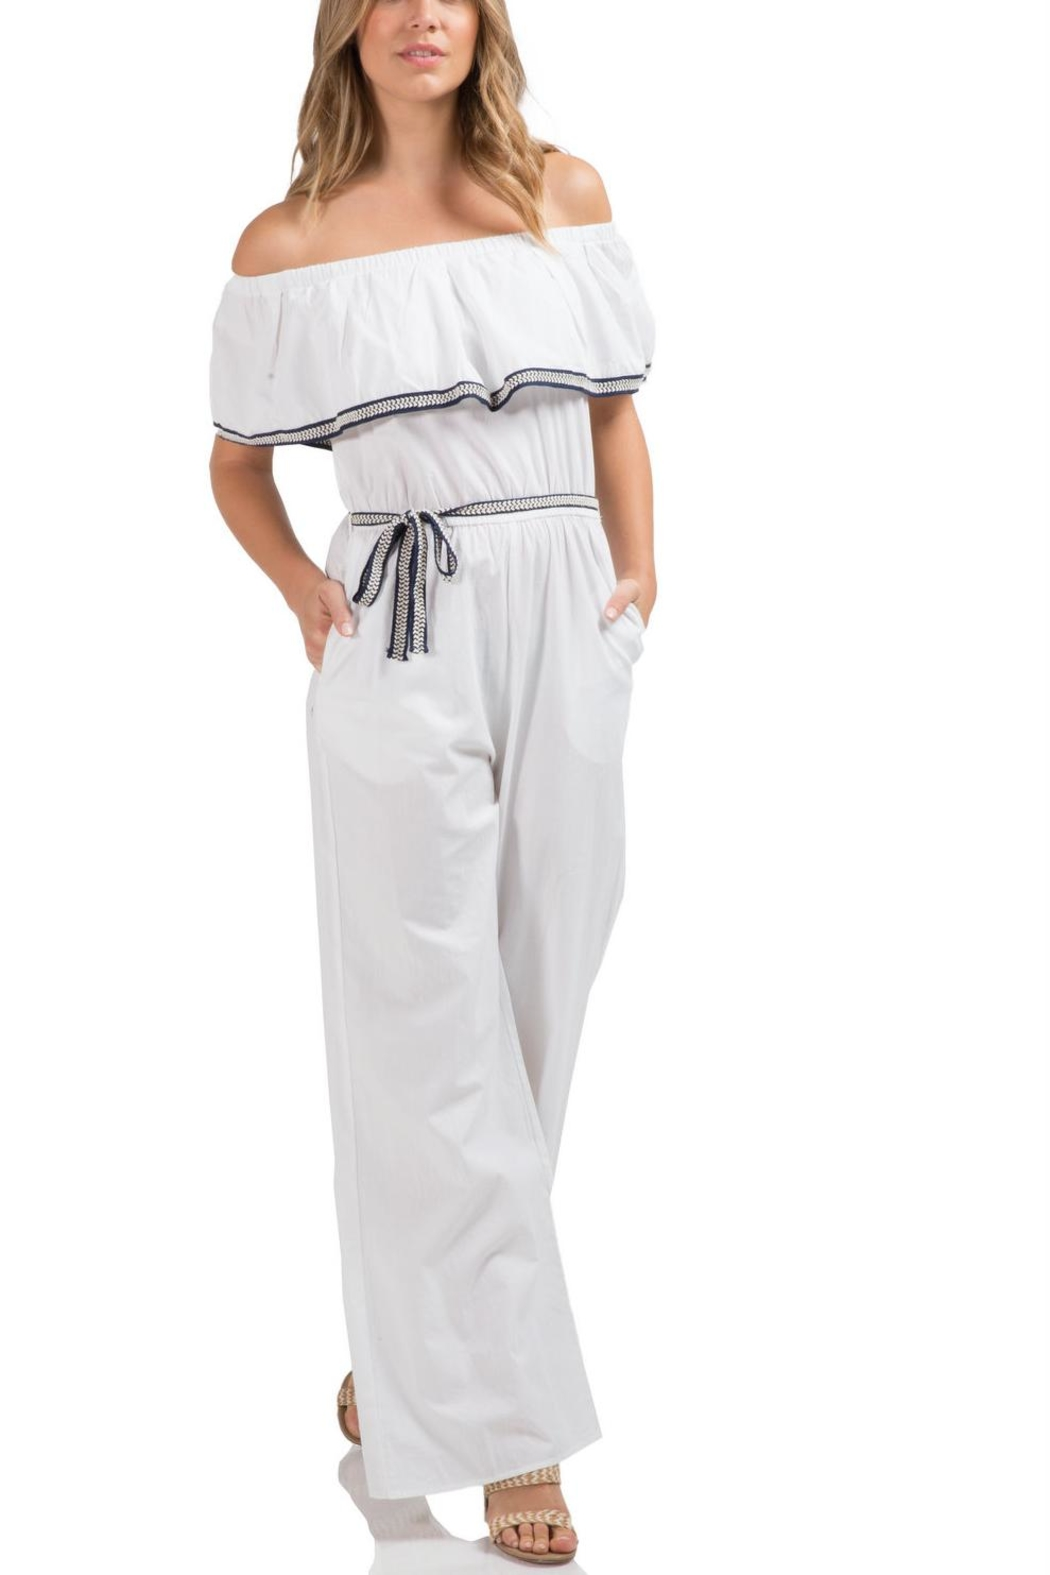 Elan International Nantucket Jumpsuit - Main Image